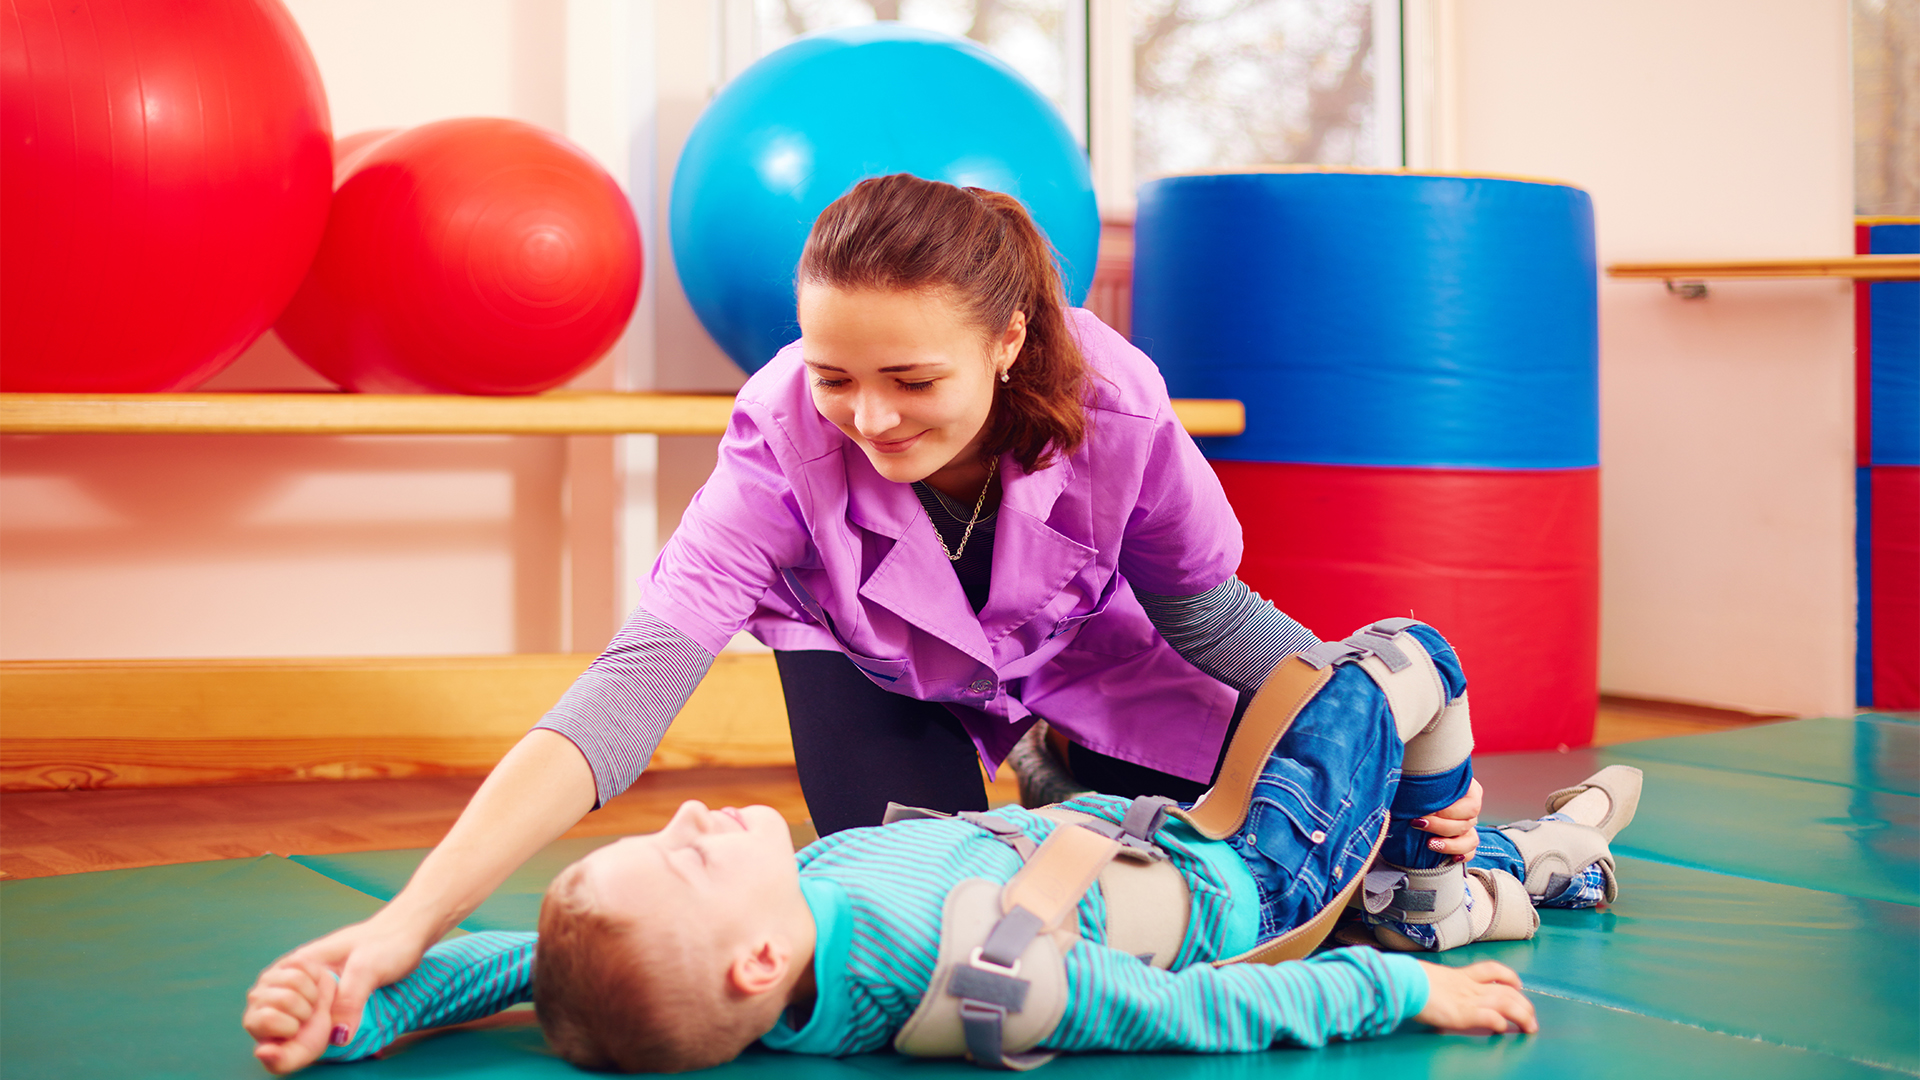 Individual working with child in rehabilitation center